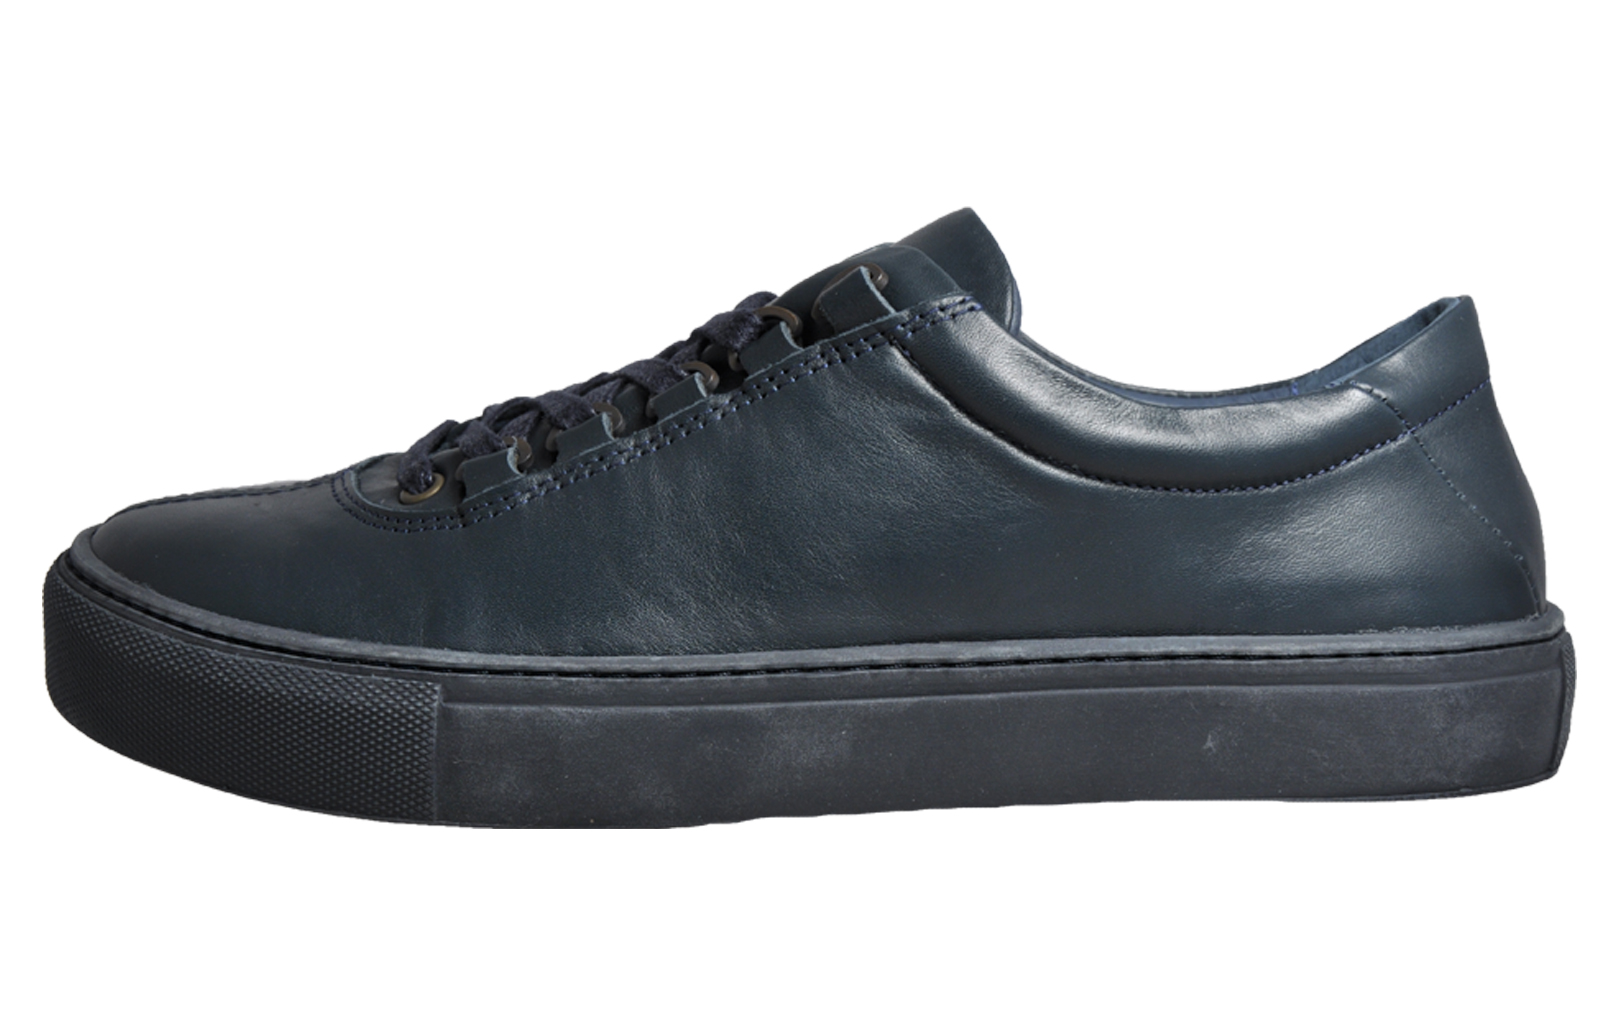 k-swiss shoes classic cleaning incorporated definition for kids